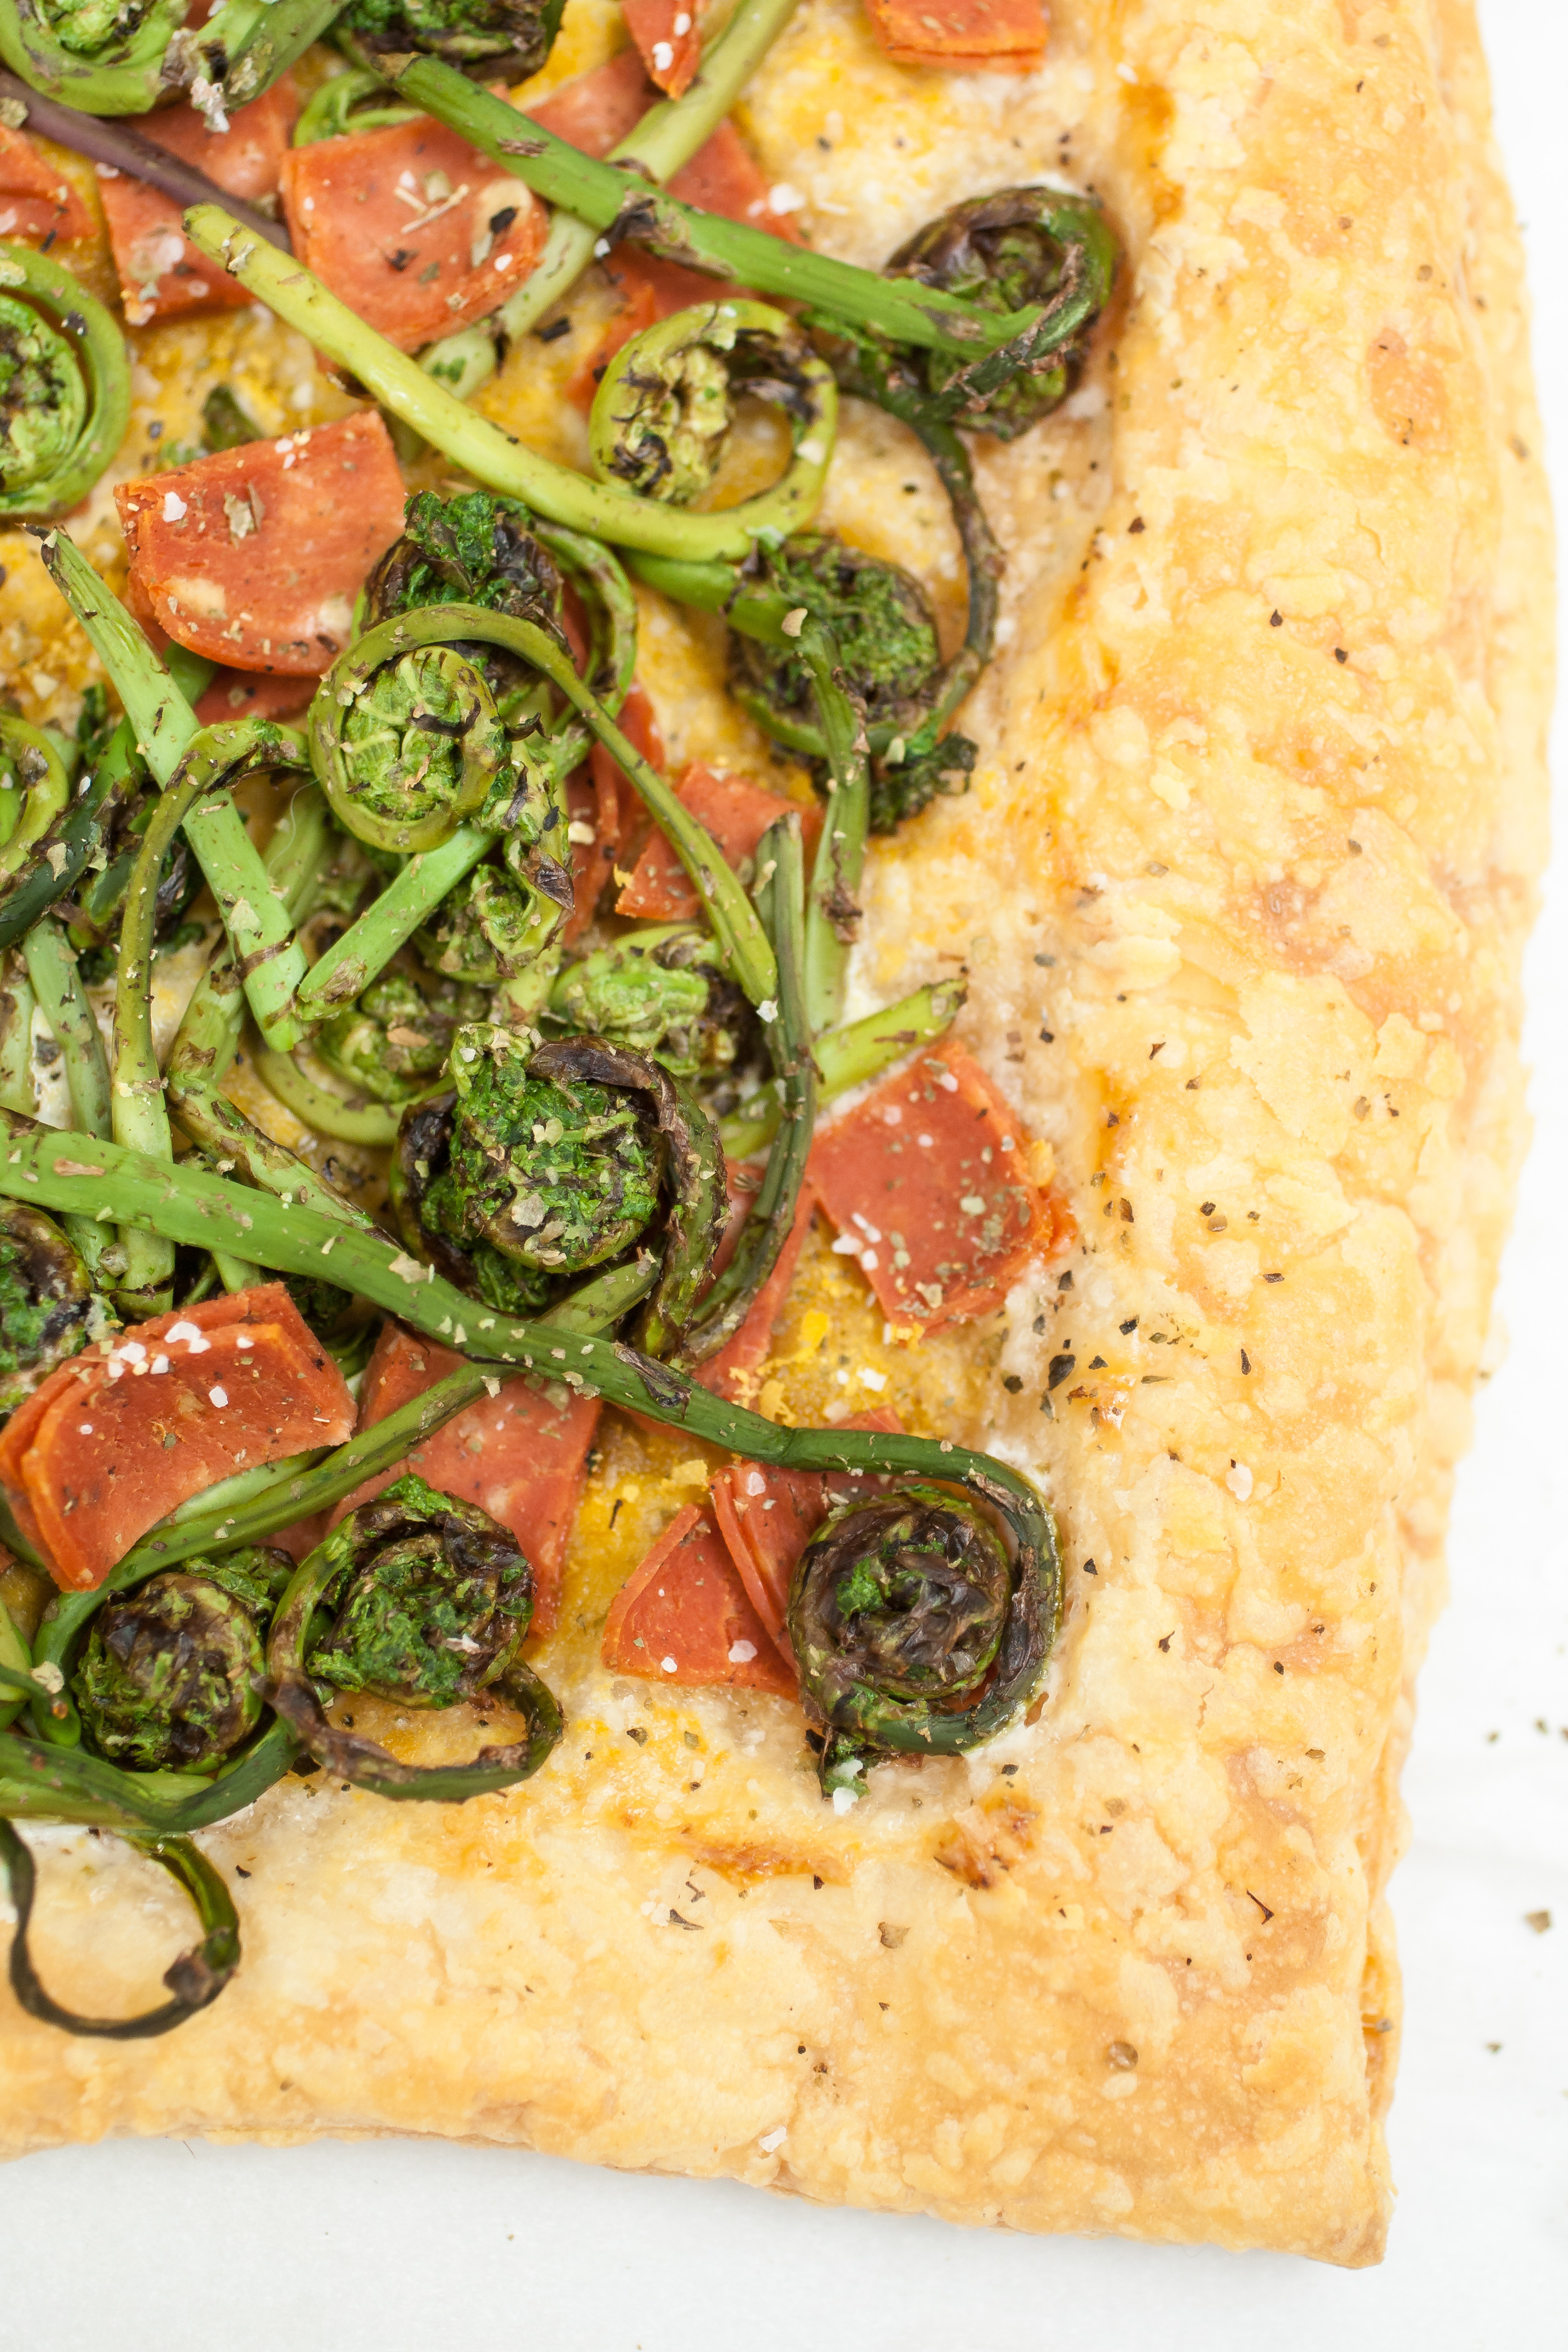 Flaky puff pastry is slathered with ranch dressing and then loaded with fresh fiddlehead ferns and vegan salami. Baked to a golden-brown, this tart is perfect for a light meal or appetizer. It's sure to be a hit among those that are veg-friendly and meat-eaters as well.